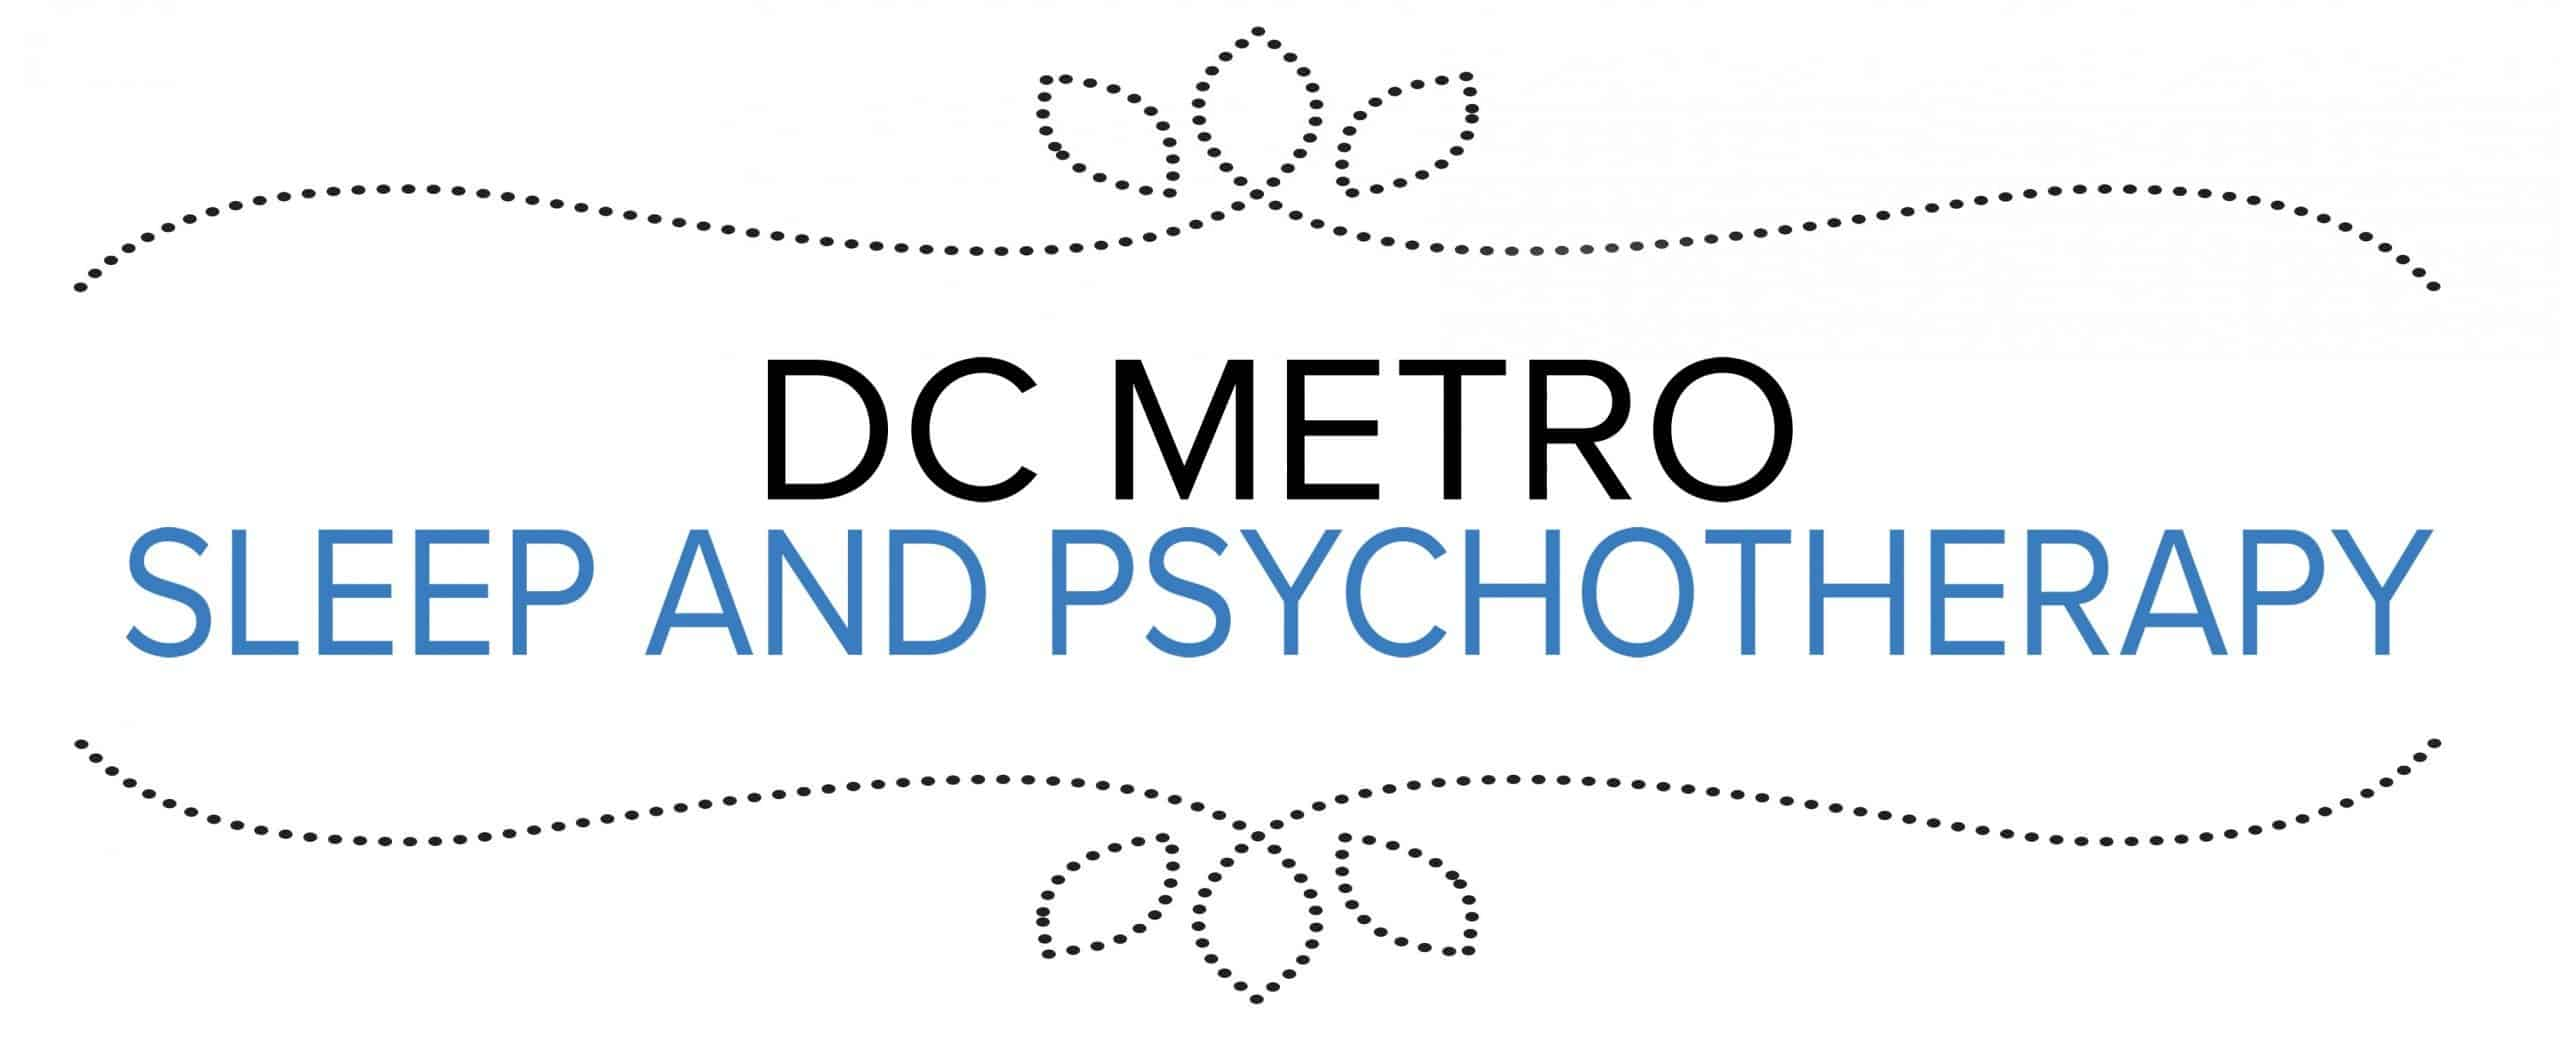 DC Metro Sleep and Psychotherapy